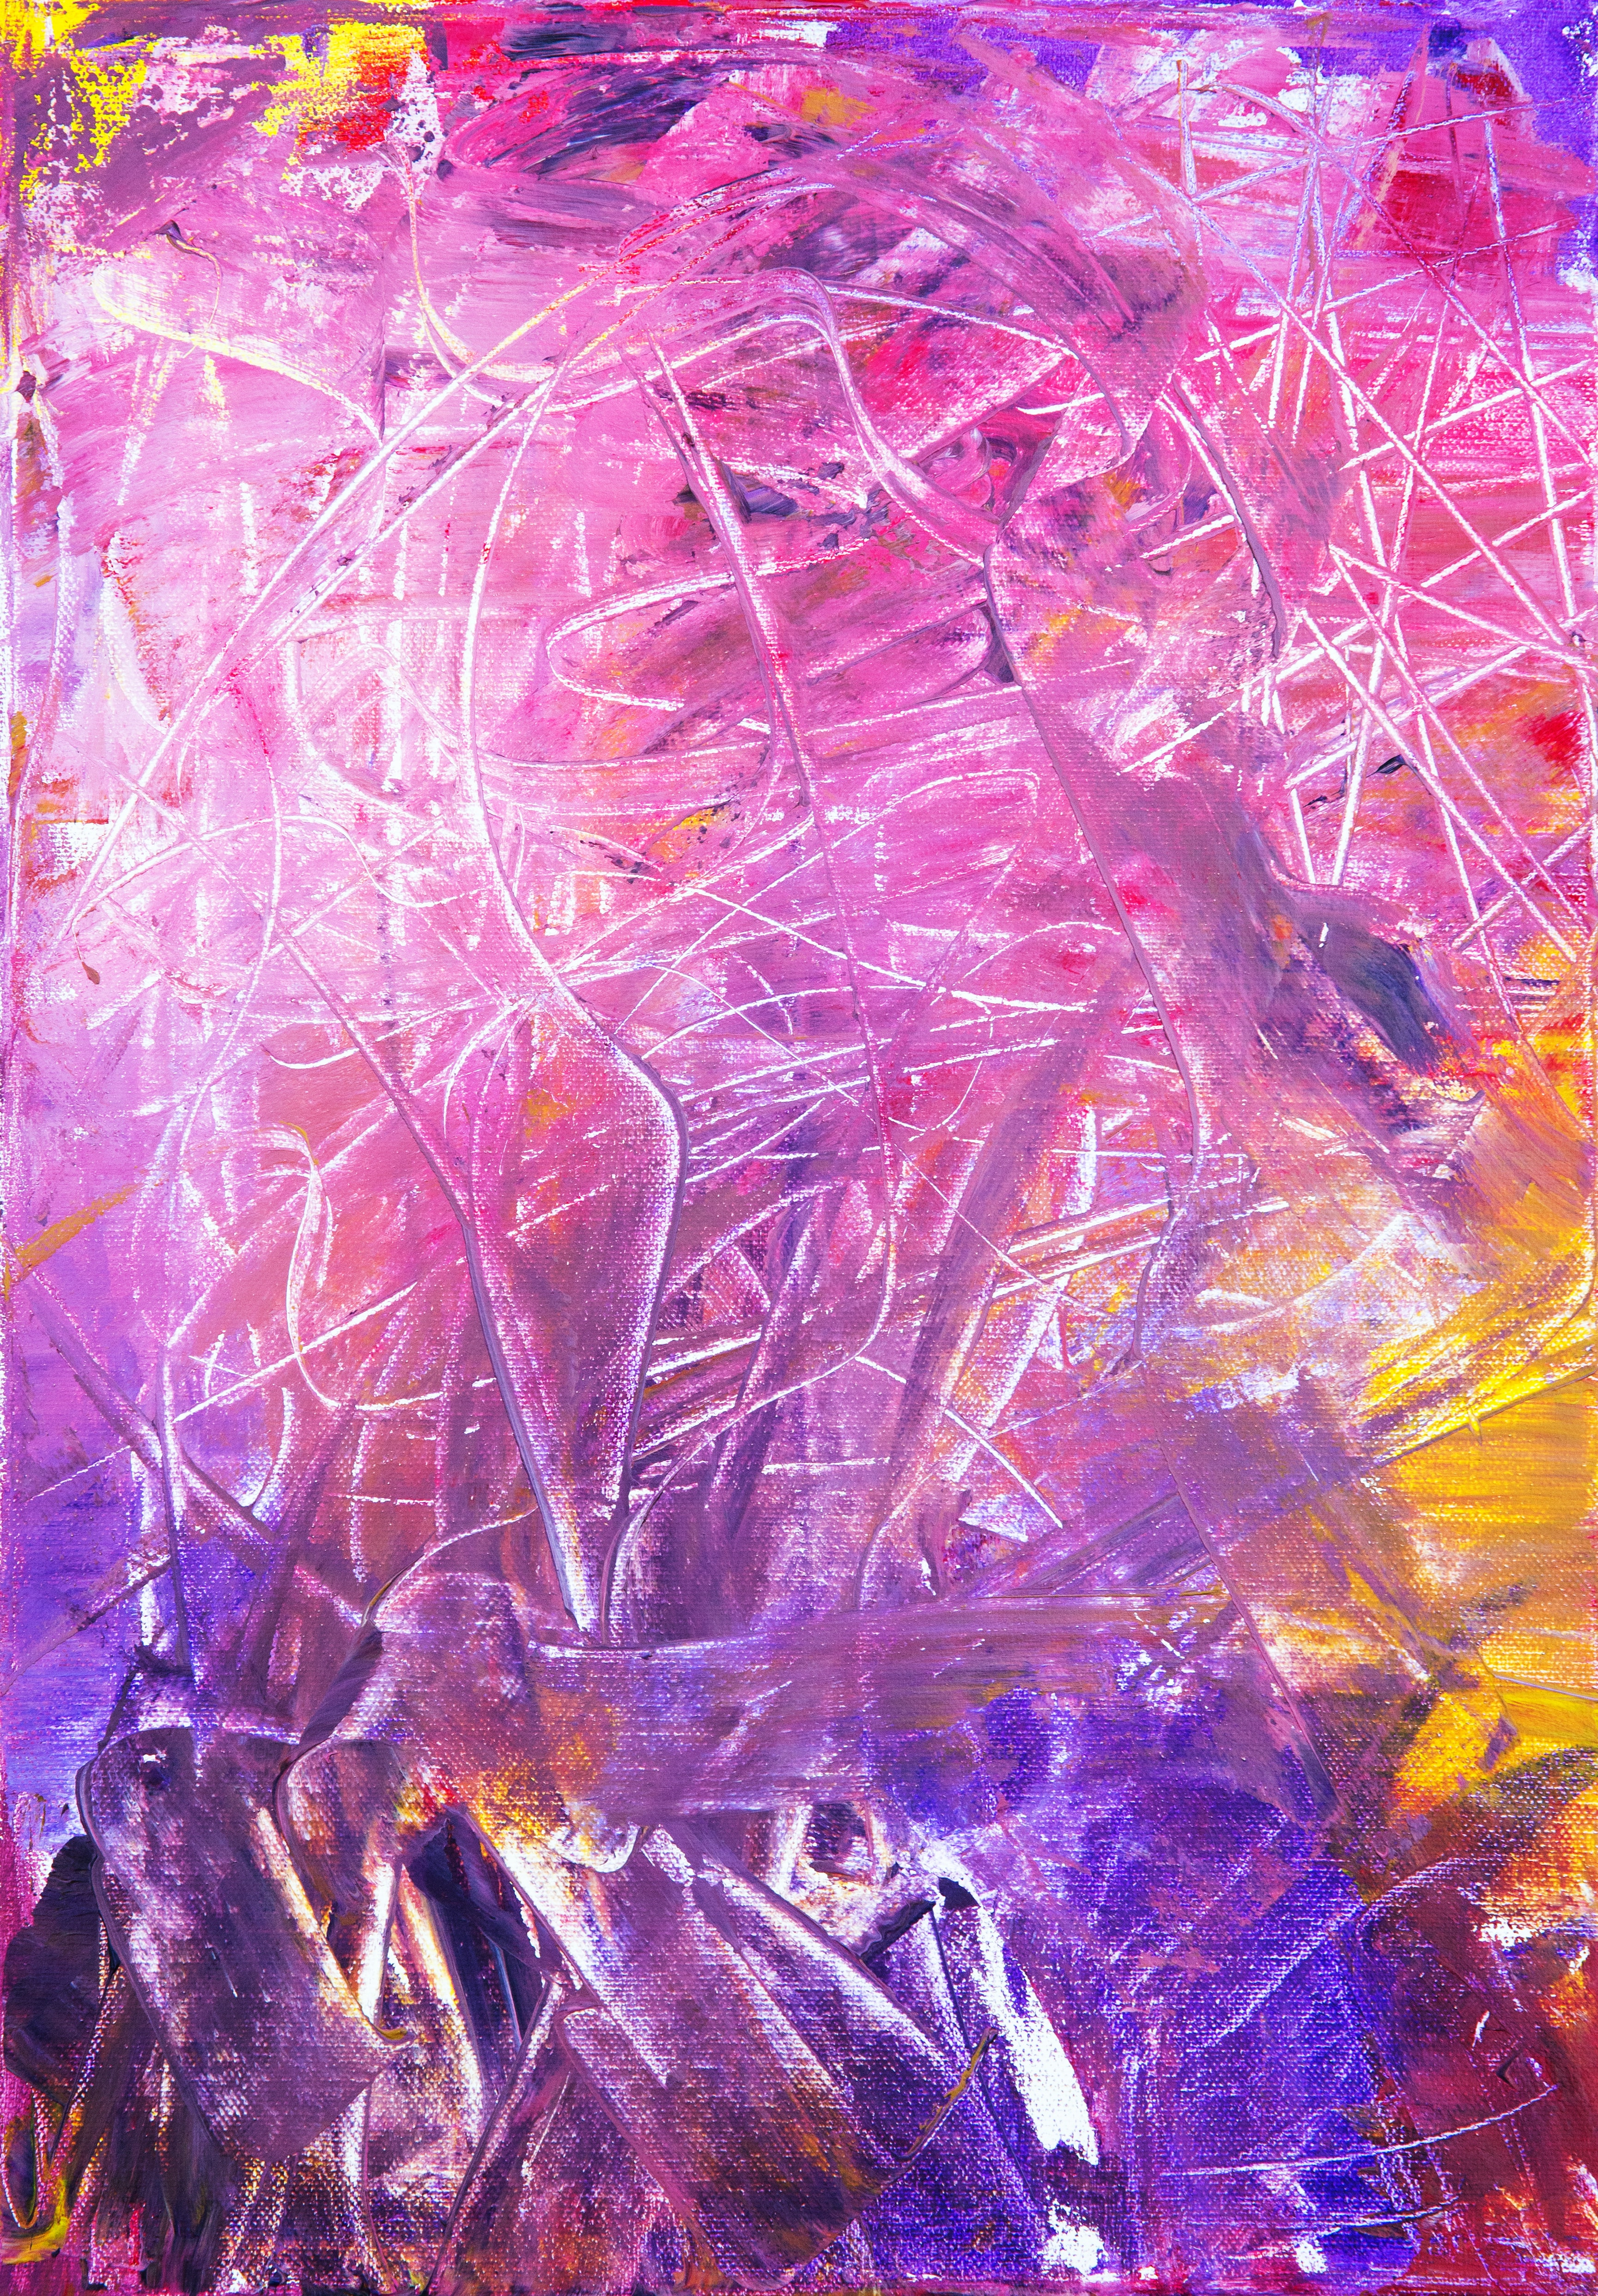 purple and brown abstract painting